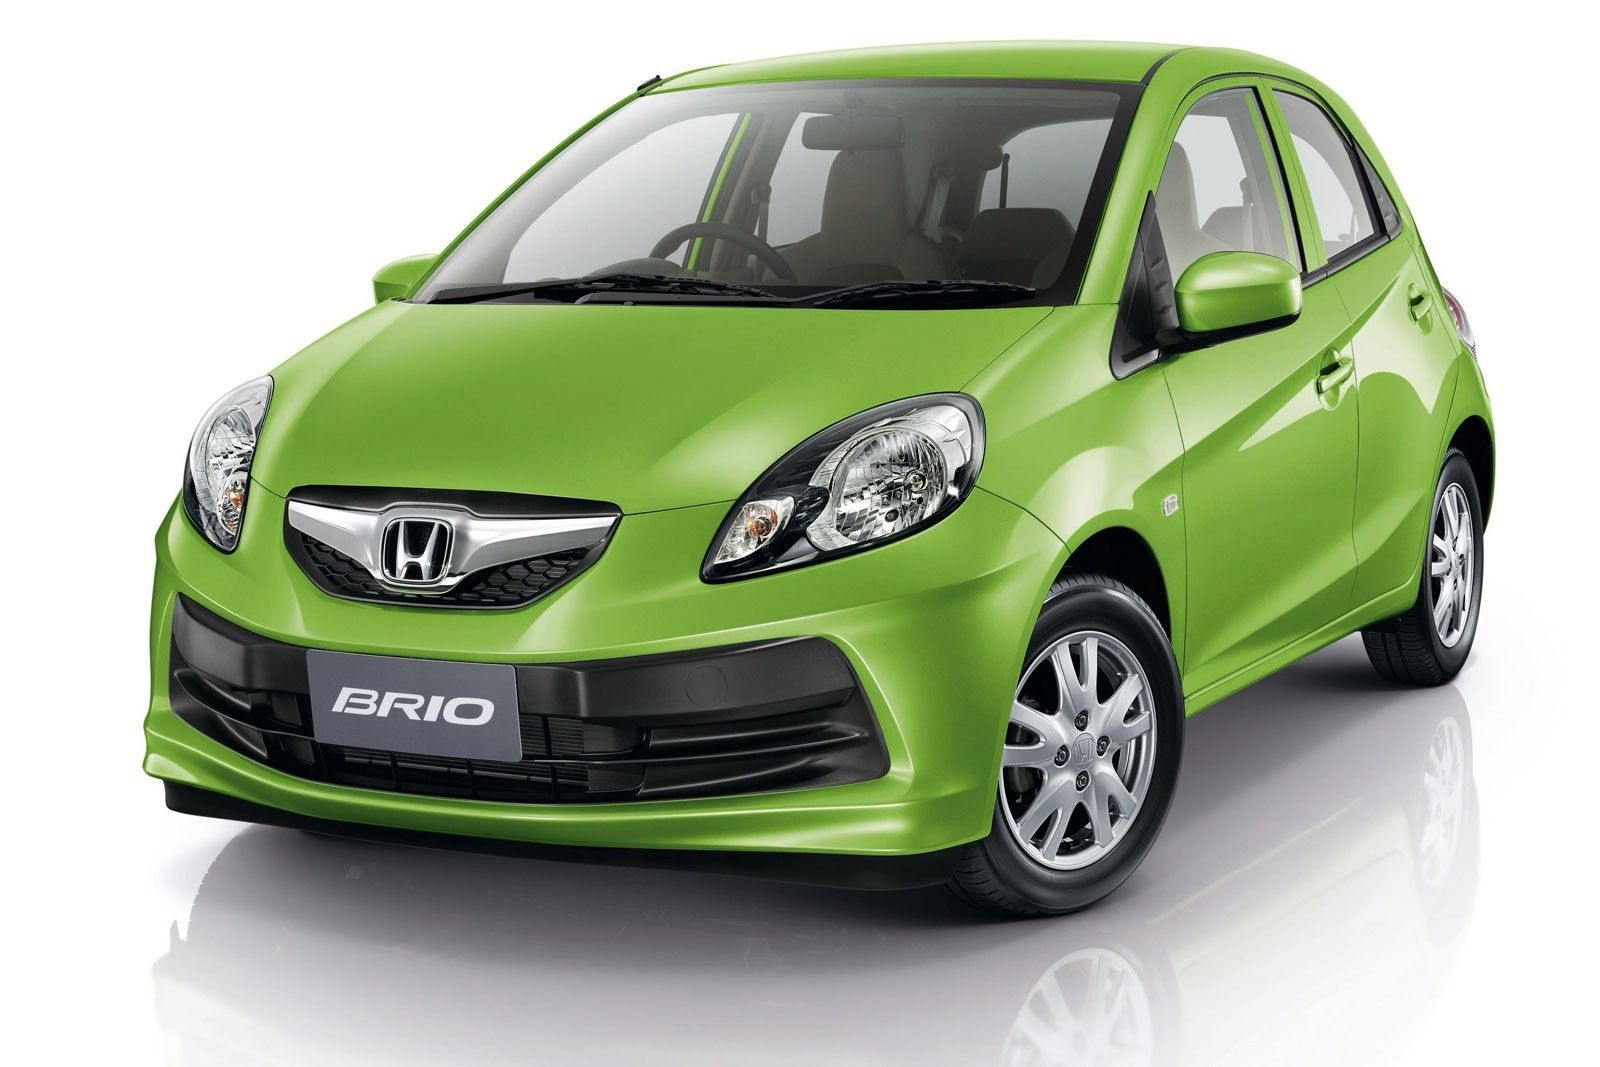 Launched on sep 2011 with the starting price of rs lakh for basic model honda brio e version price rs lakh honda brio s version price rs lakh honda